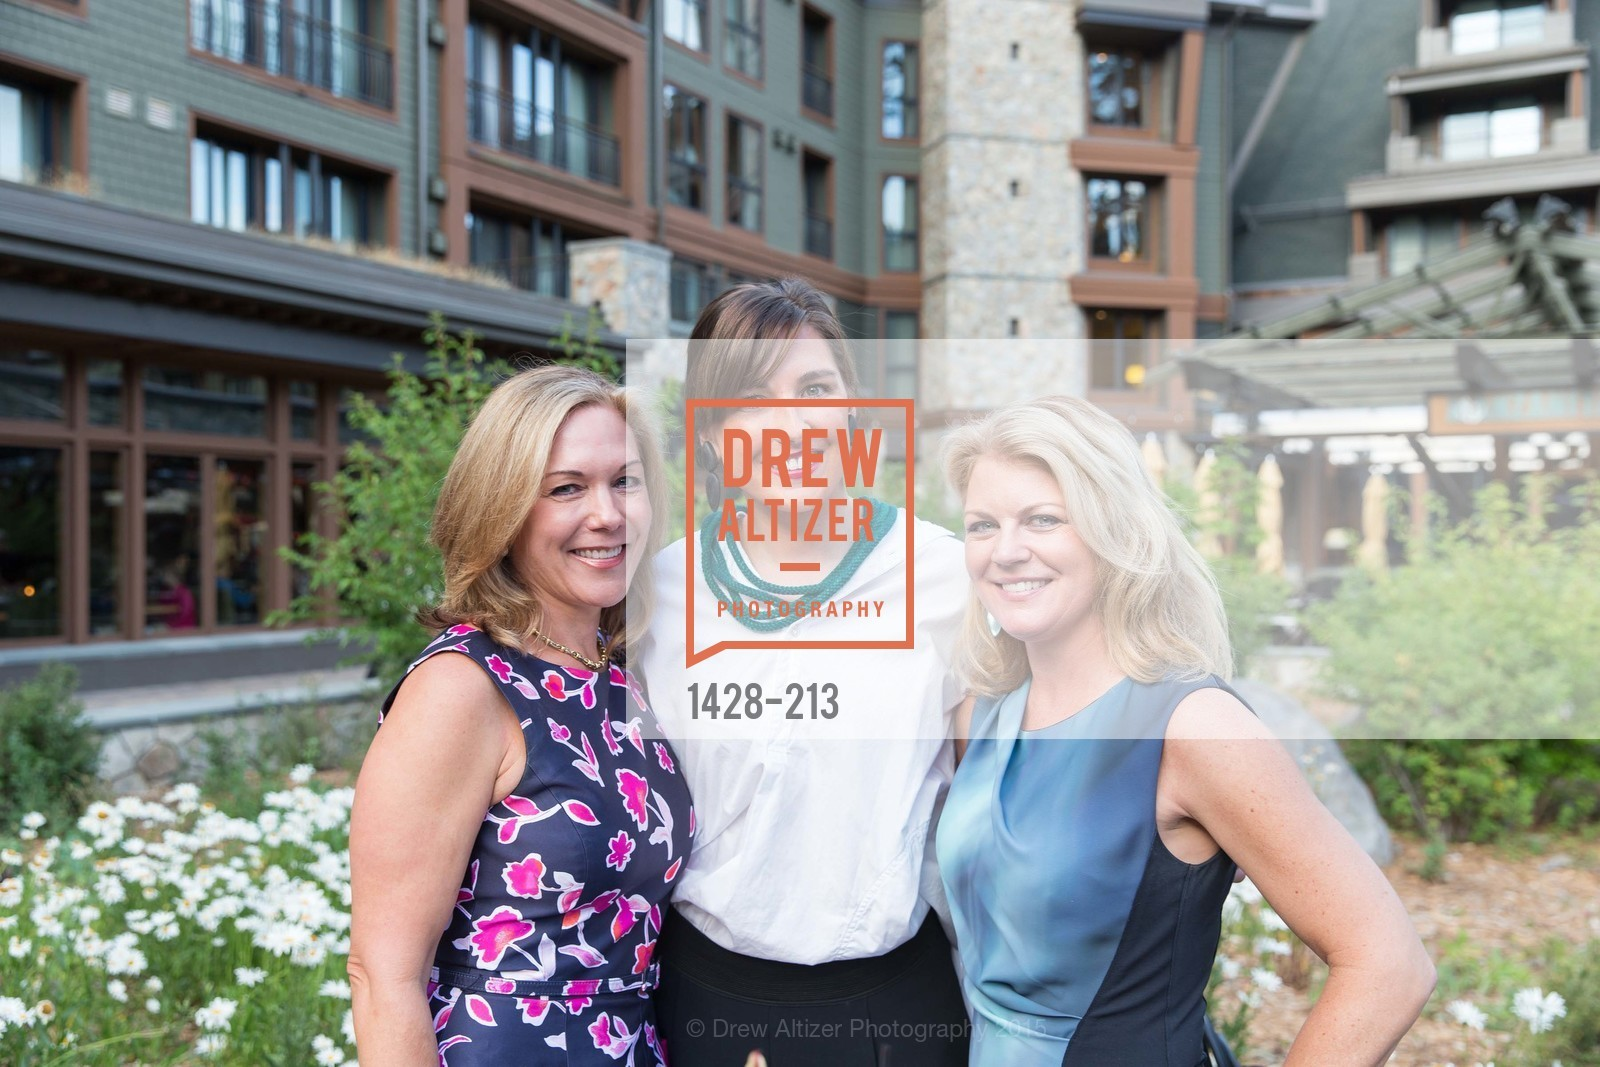 Darayn Hickingbotham, Justine Macfee, Tammy Pioch, League to Save Lake Tahoe Sponsor Cocktail Party, Ritz-Carlton, Lake Tahoe, July 31st, 2015,Drew Altizer, Drew Altizer Photography, full-service agency, private events, San Francisco photographer, photographer california